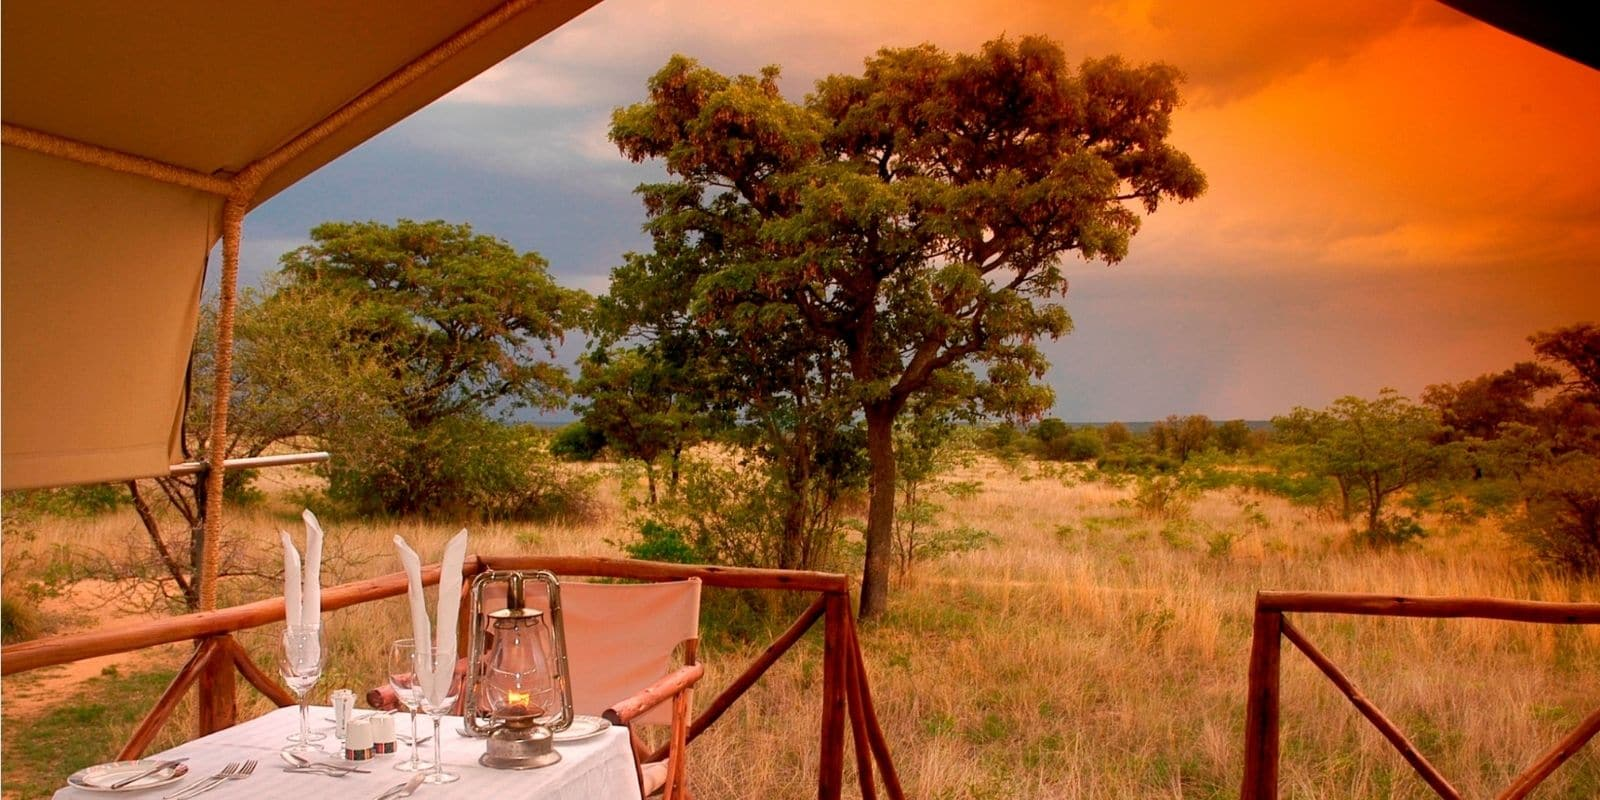 Dinner table overlooking African sunset